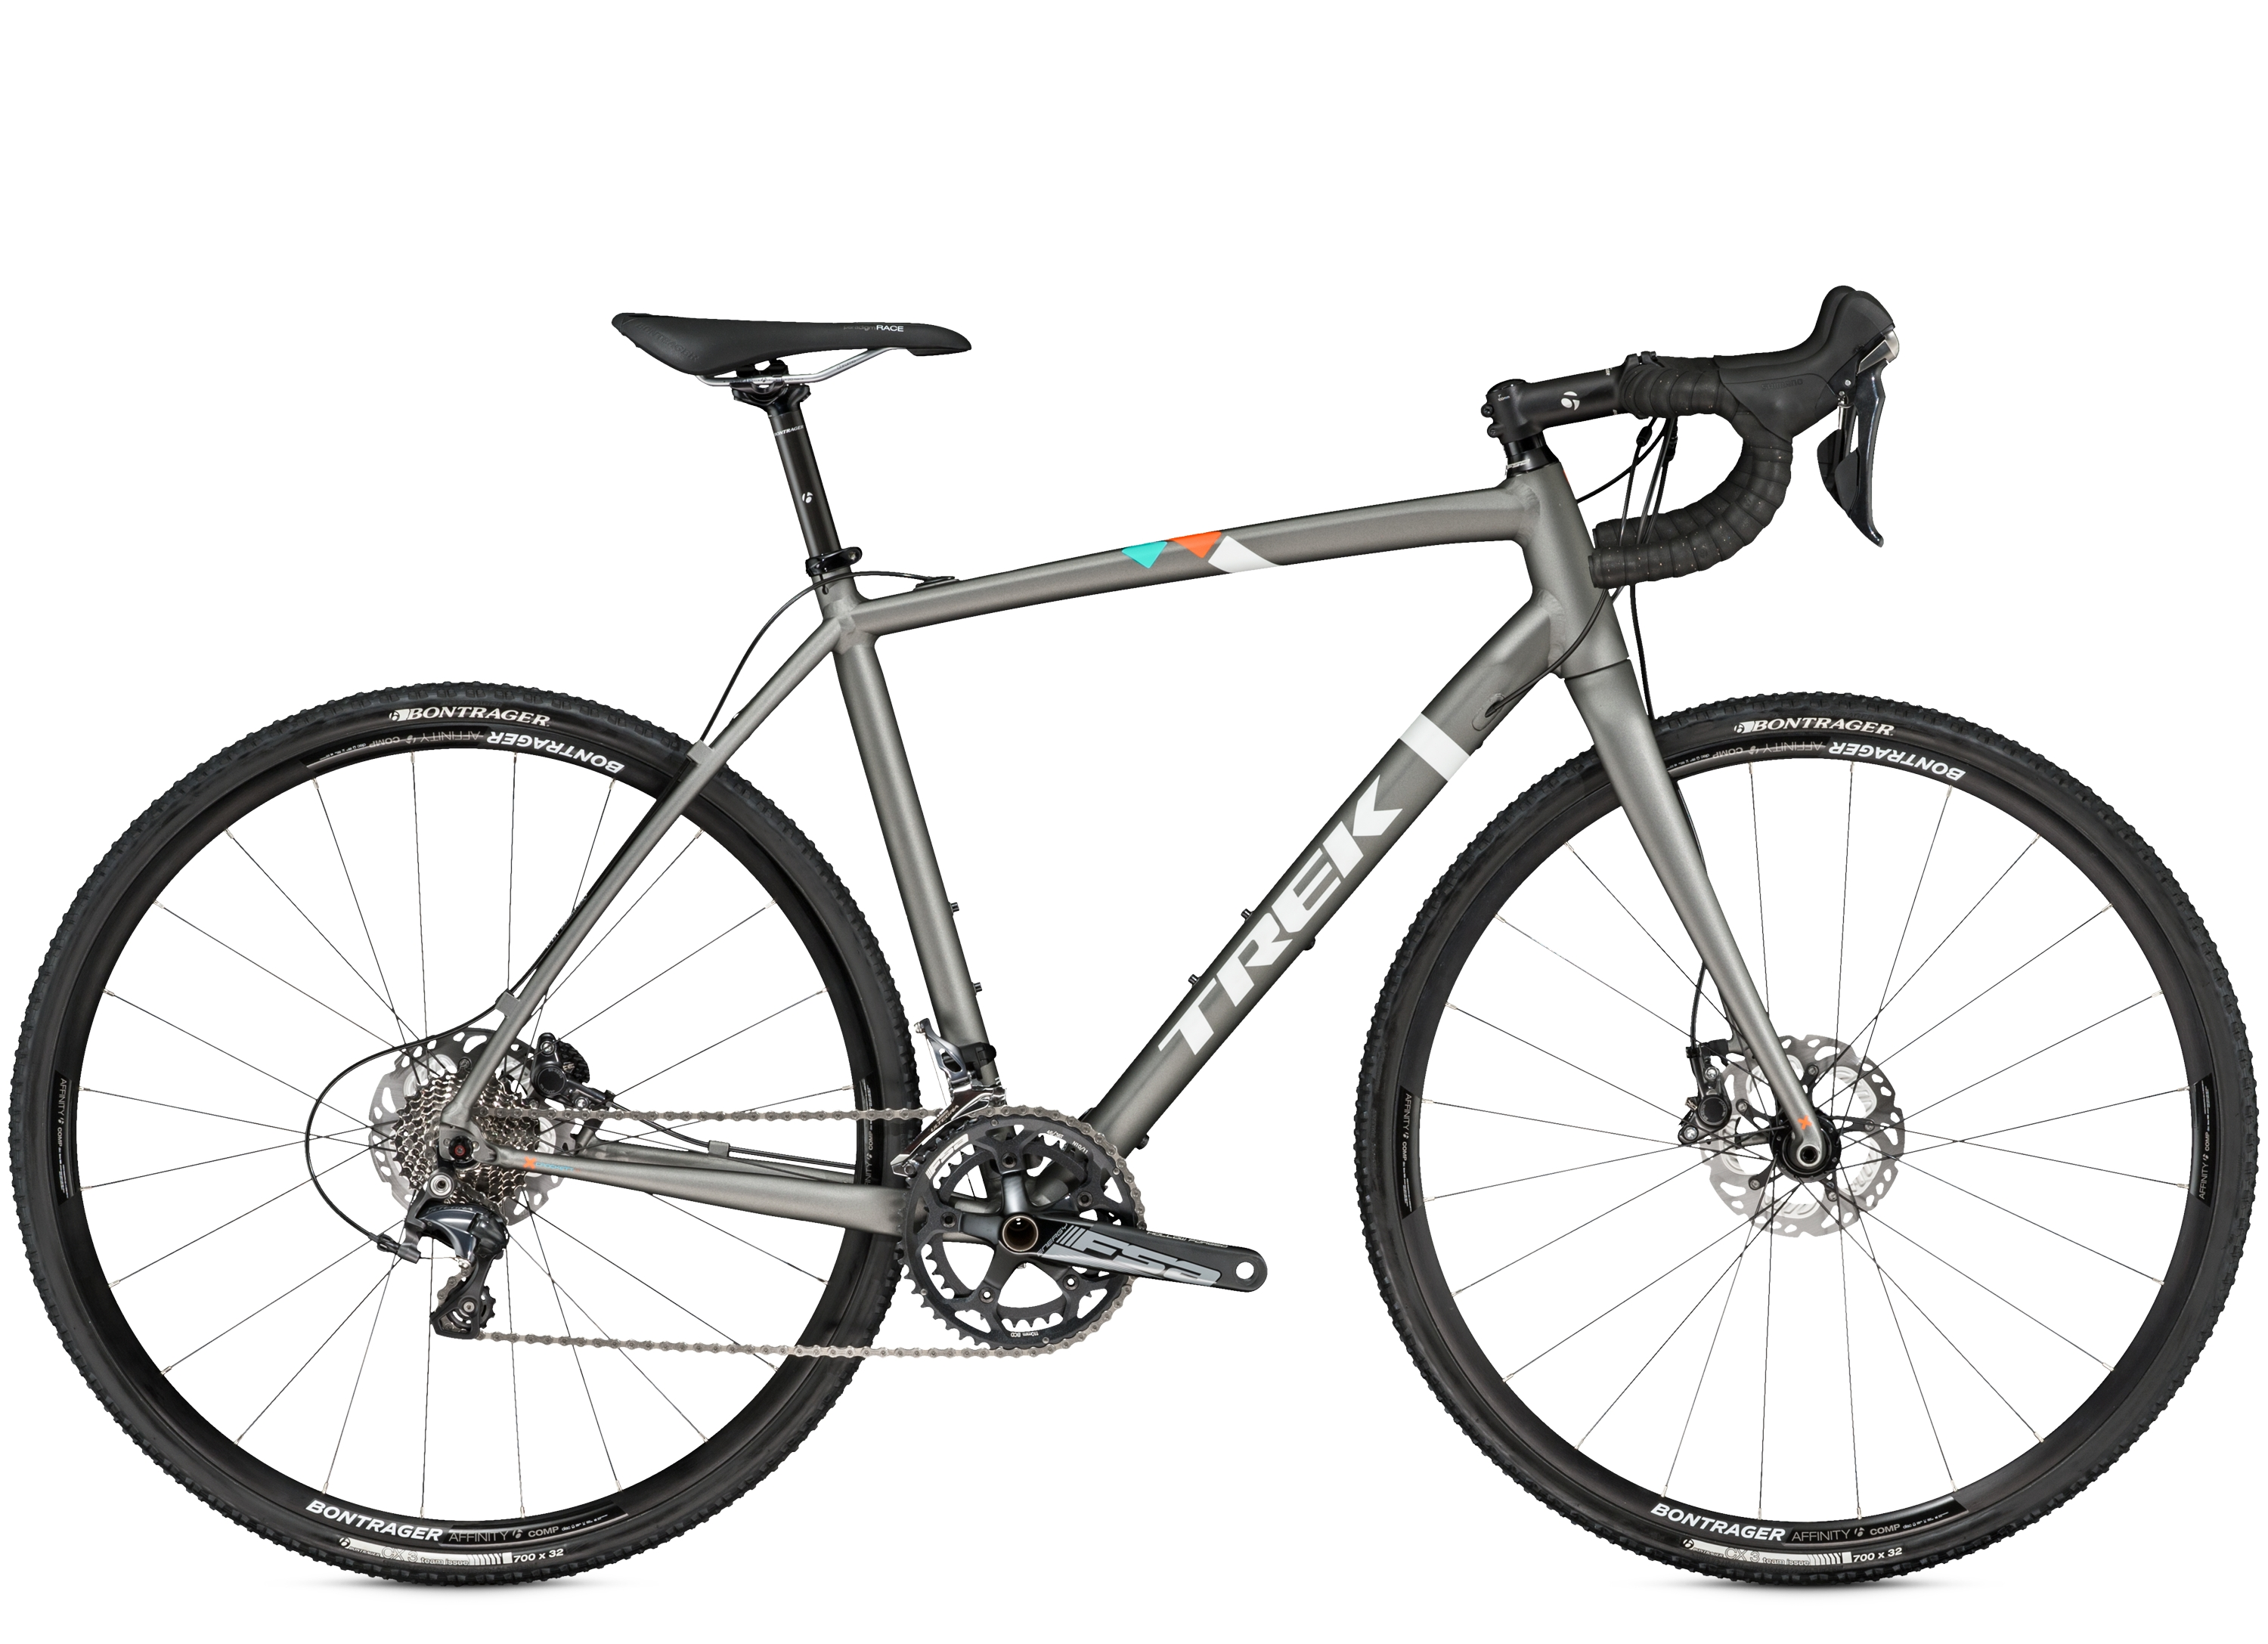 Bumsteads Road and Mountain Bikes: Second of Two NEW Trek